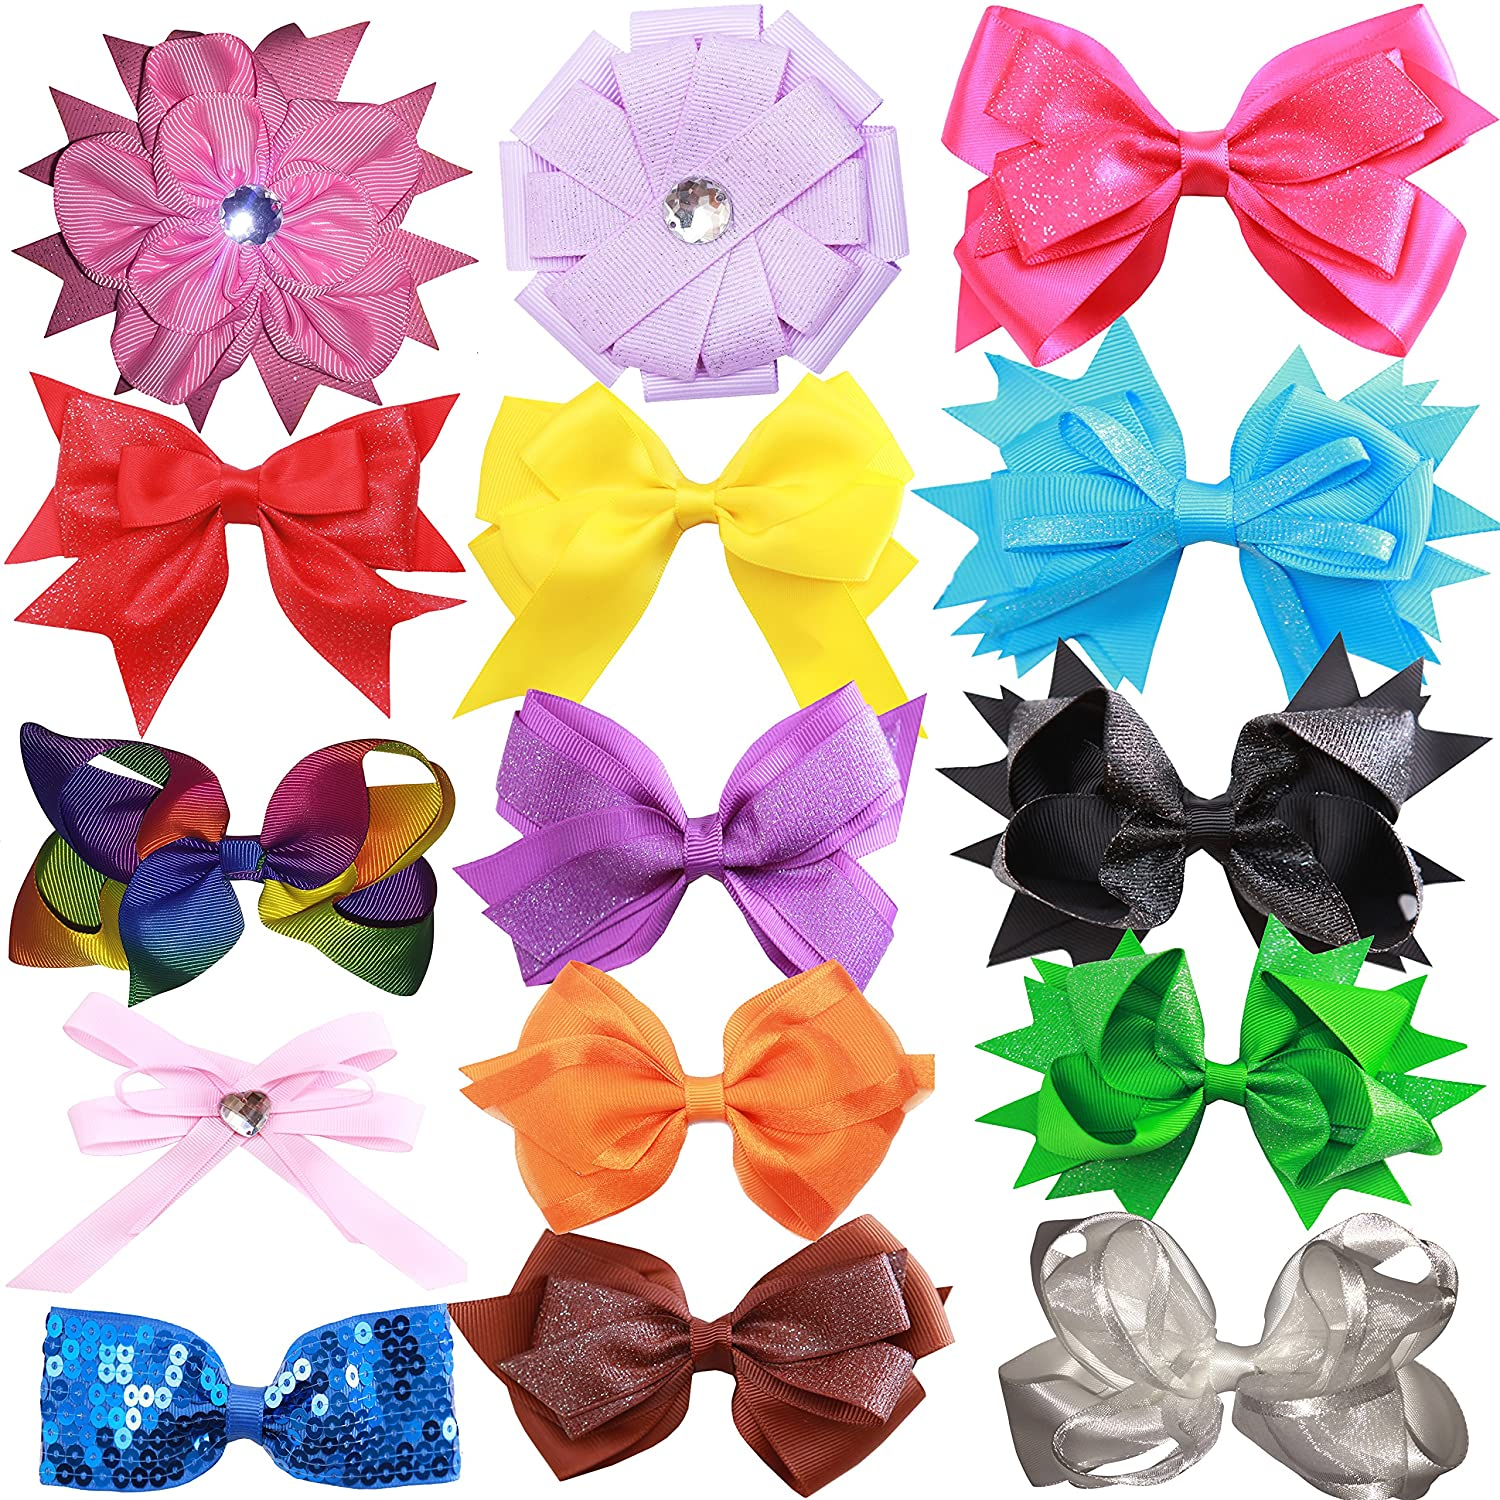 Hair Bows Clips for Girls - Kids Teens Women Accessories Educational Toy or Gift Crafts